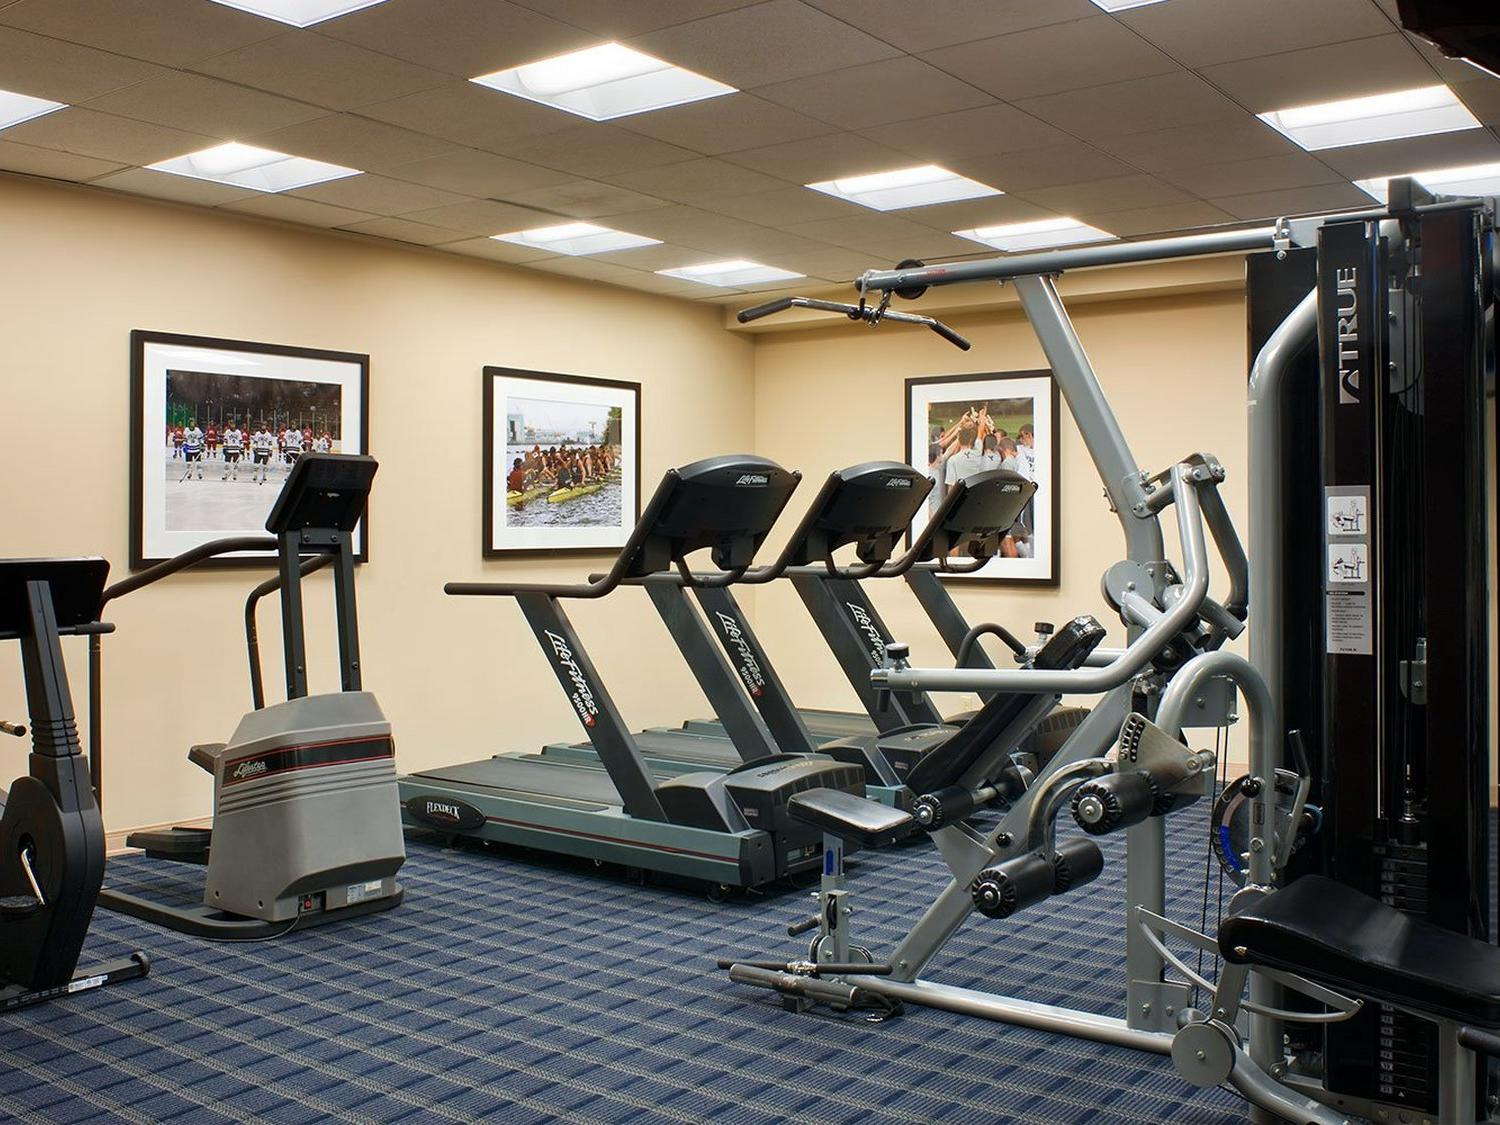 Fitness Center with multiple machines